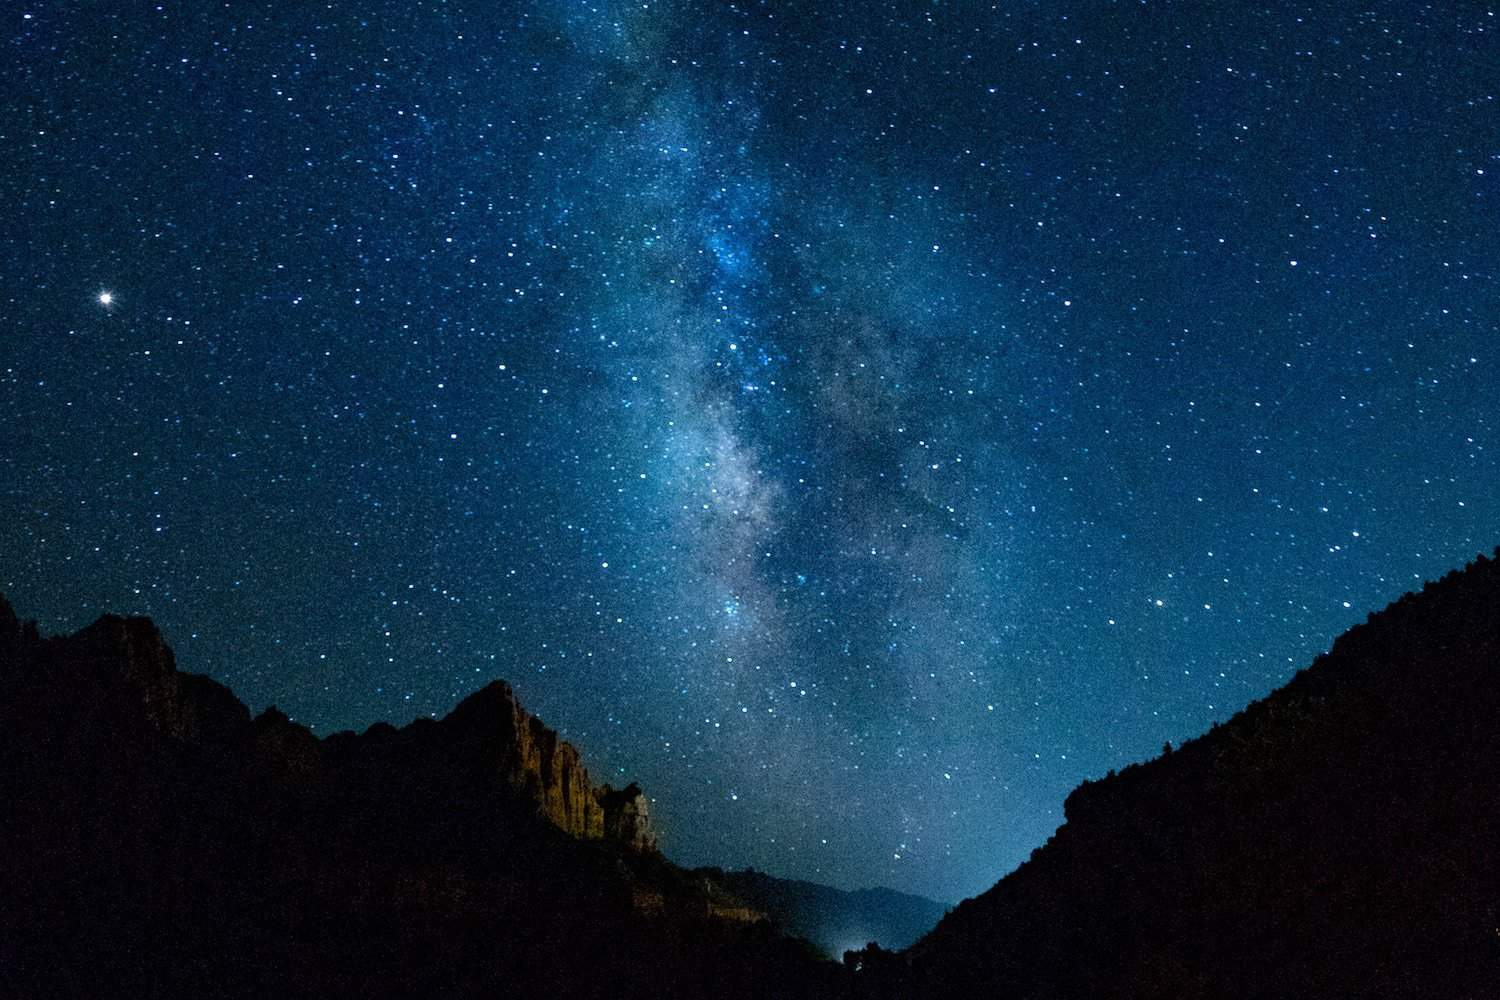 Zion National Park - Milky Way